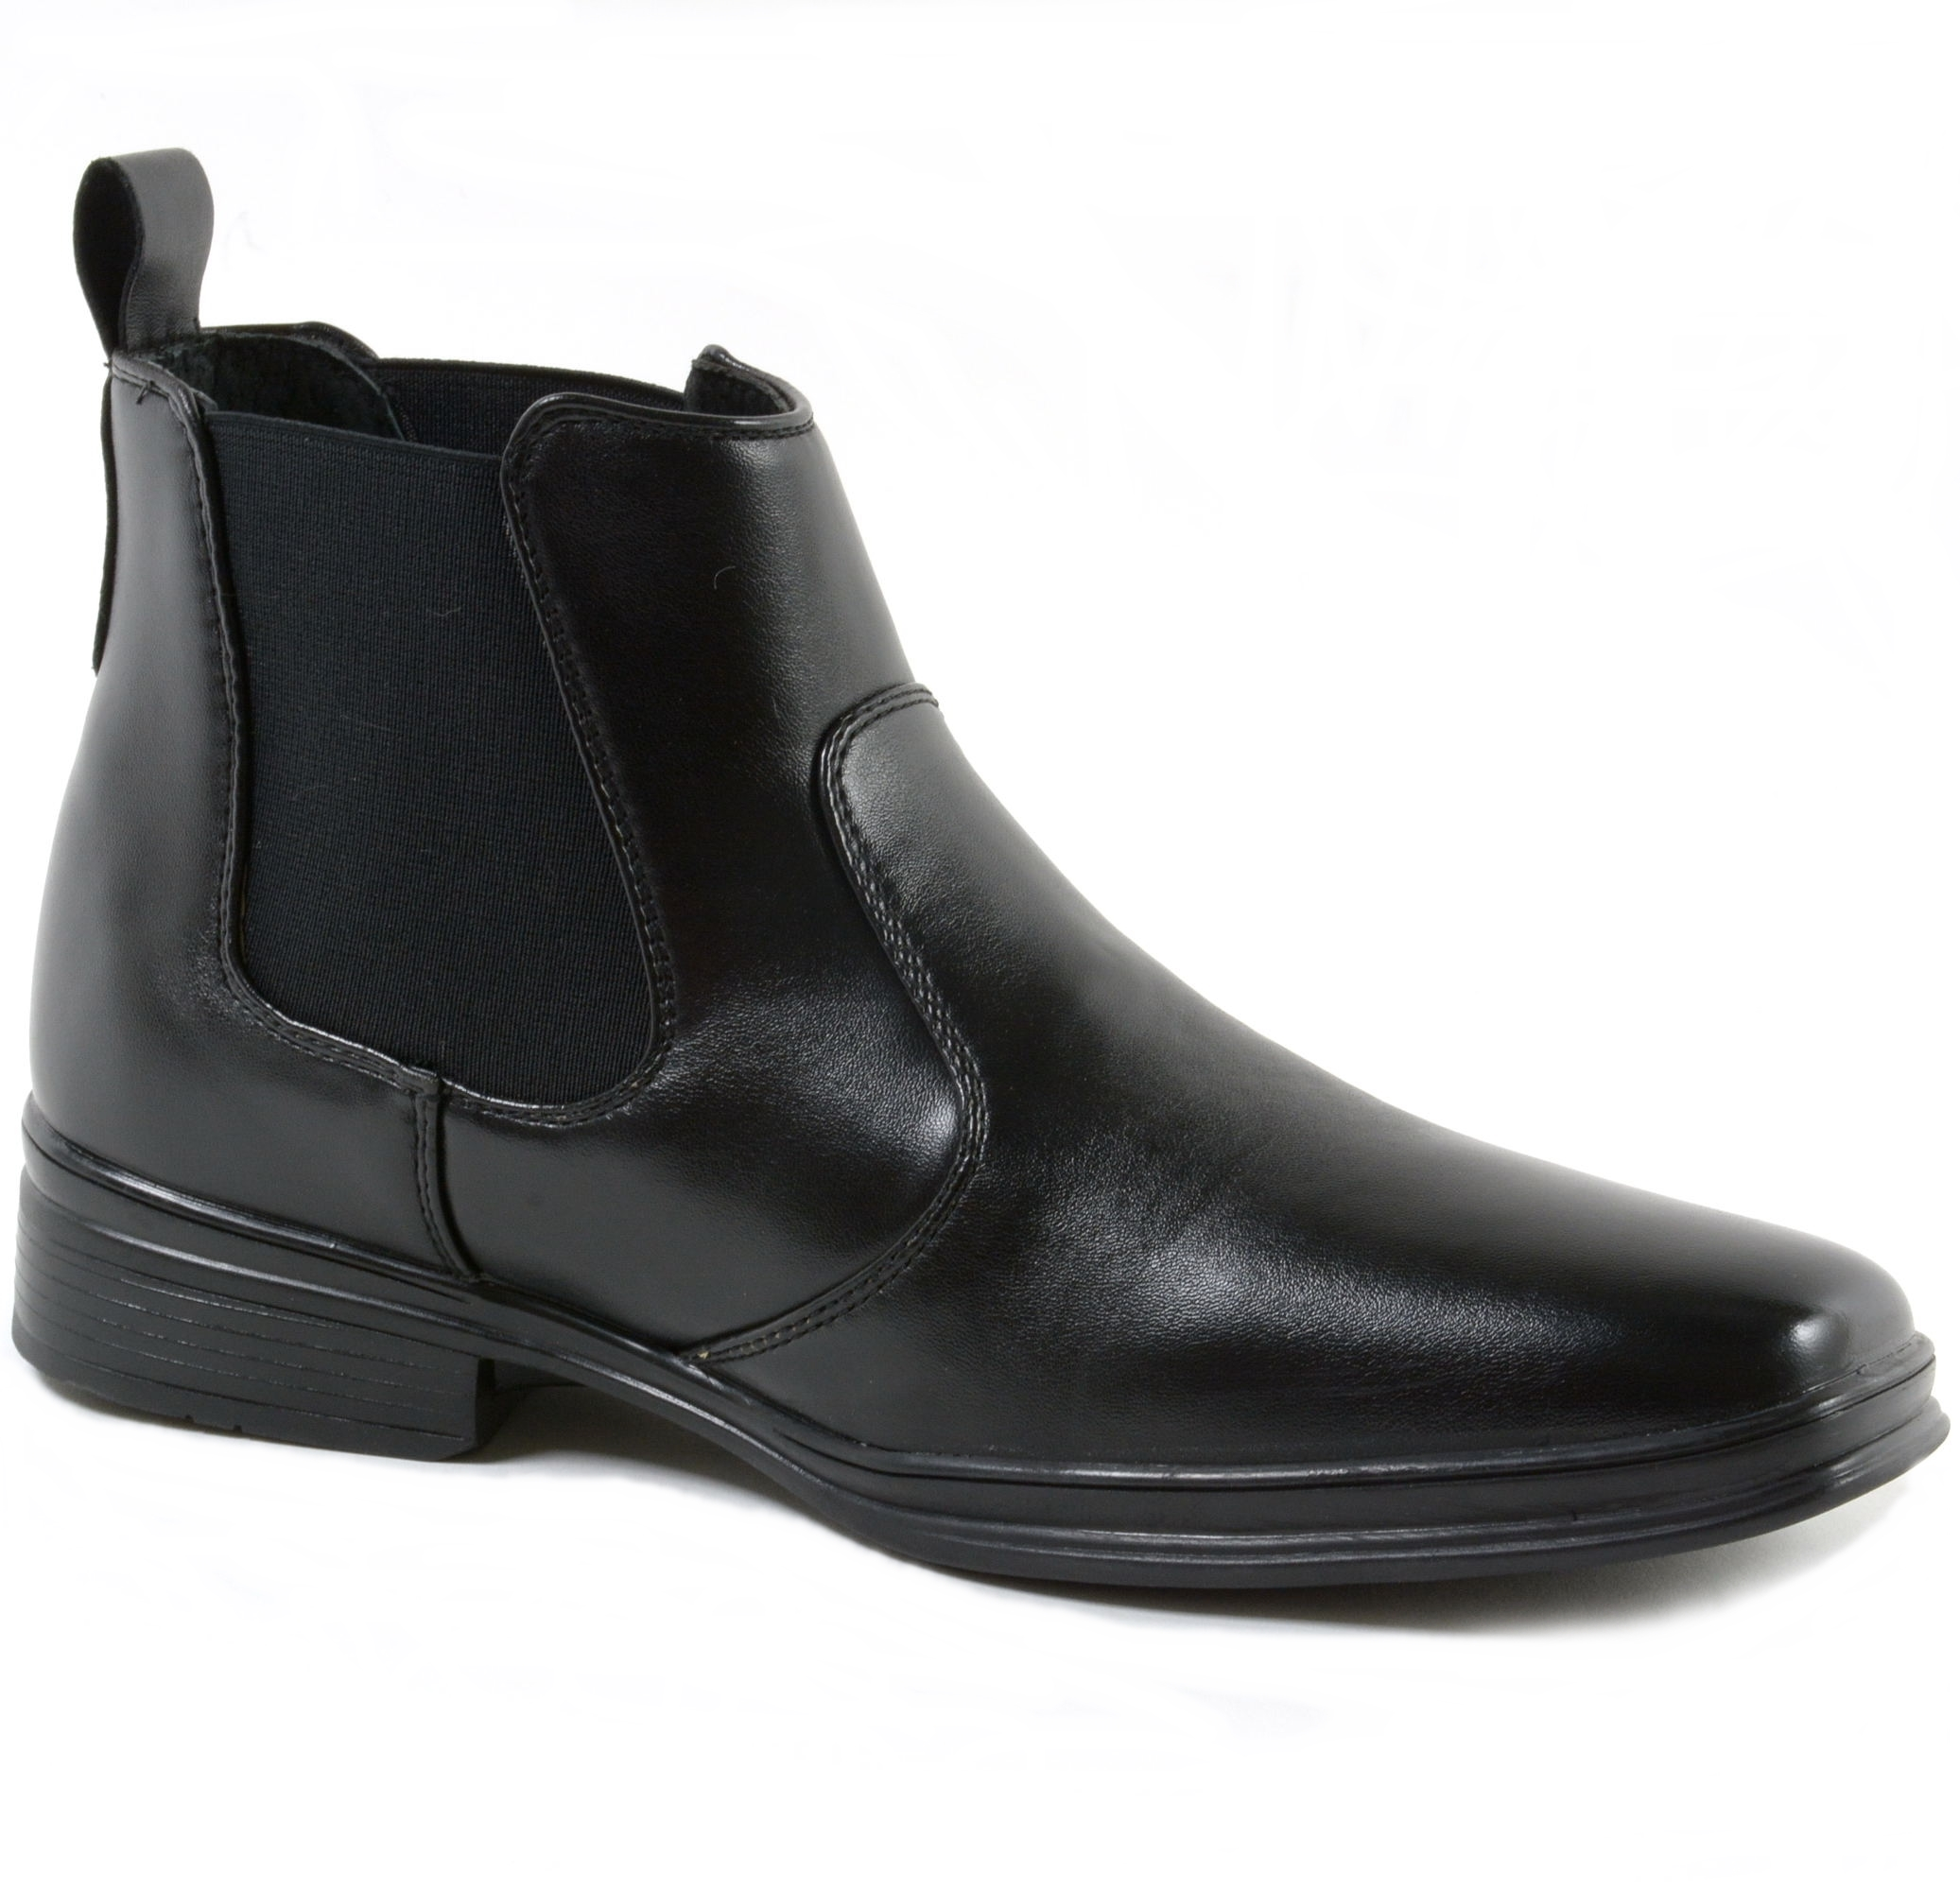 Dress Black boots for men pictures catalog photo